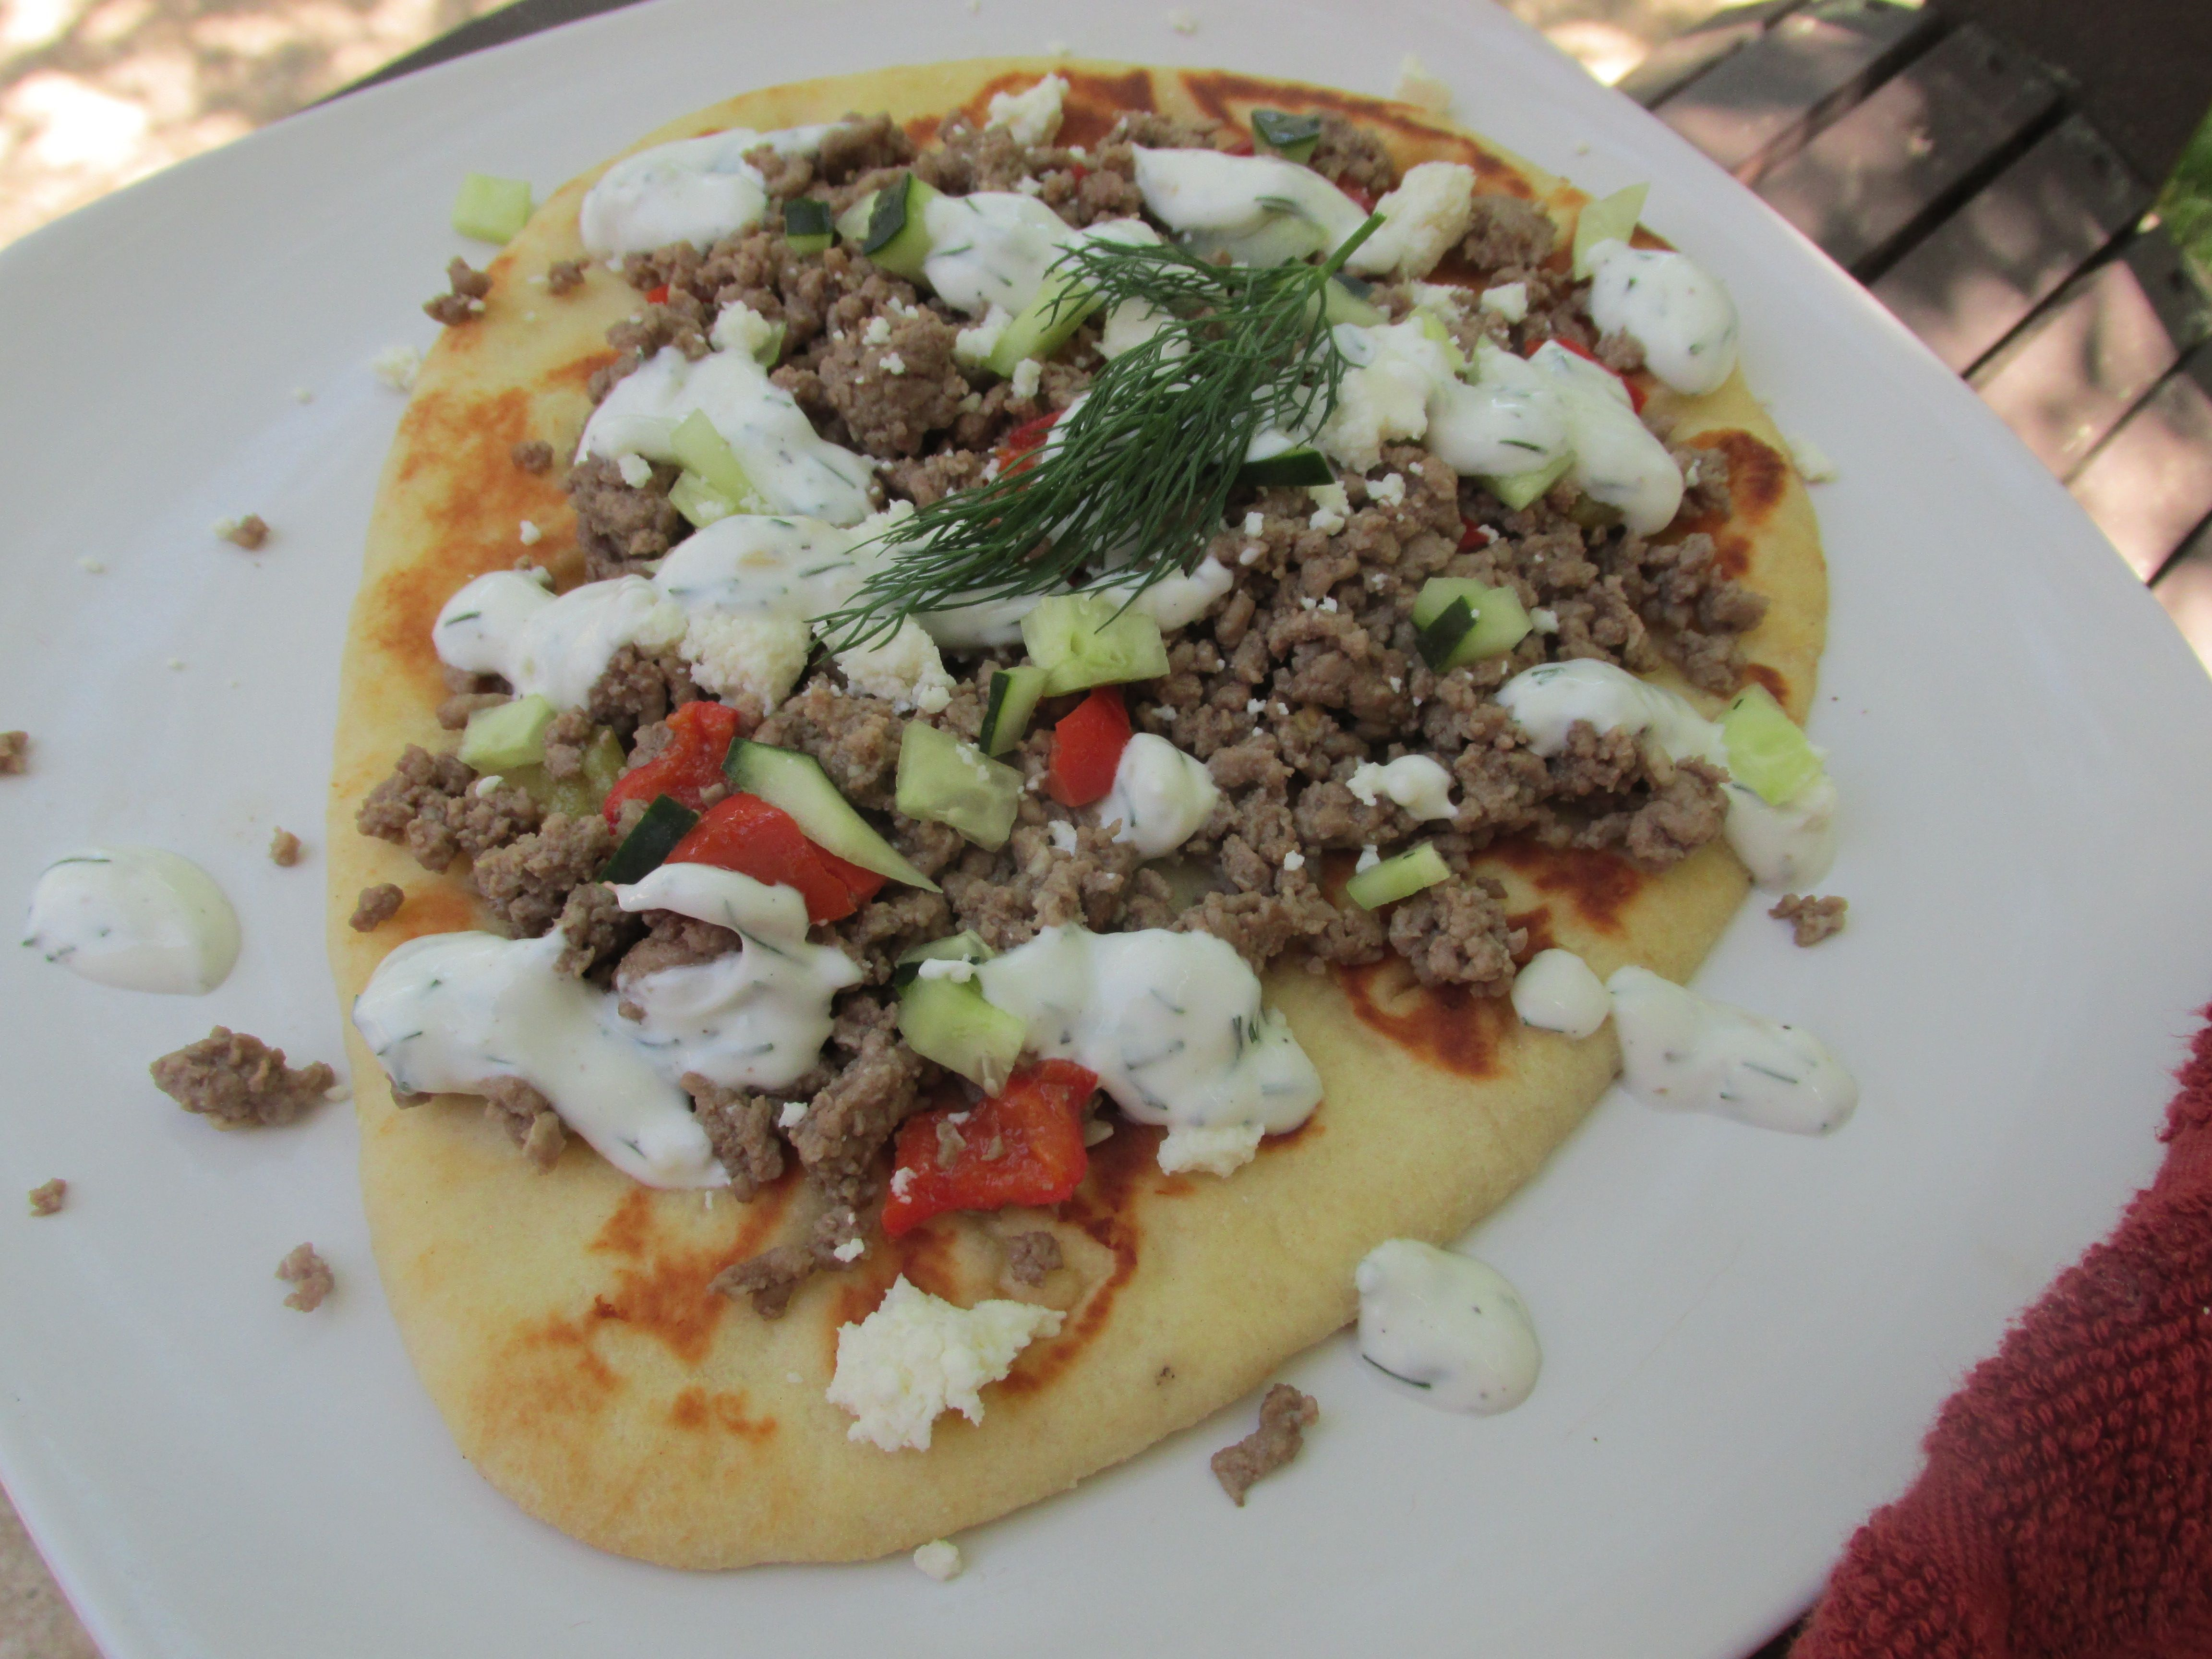 I am asking for a daily vote for the chance to meet and cook for Sunny Anderson!  Thanks for your help everyone!  http://contest.awayfromhomecooking.com/view-recipe/rid-796/Gyro-Pizza/page-2.html